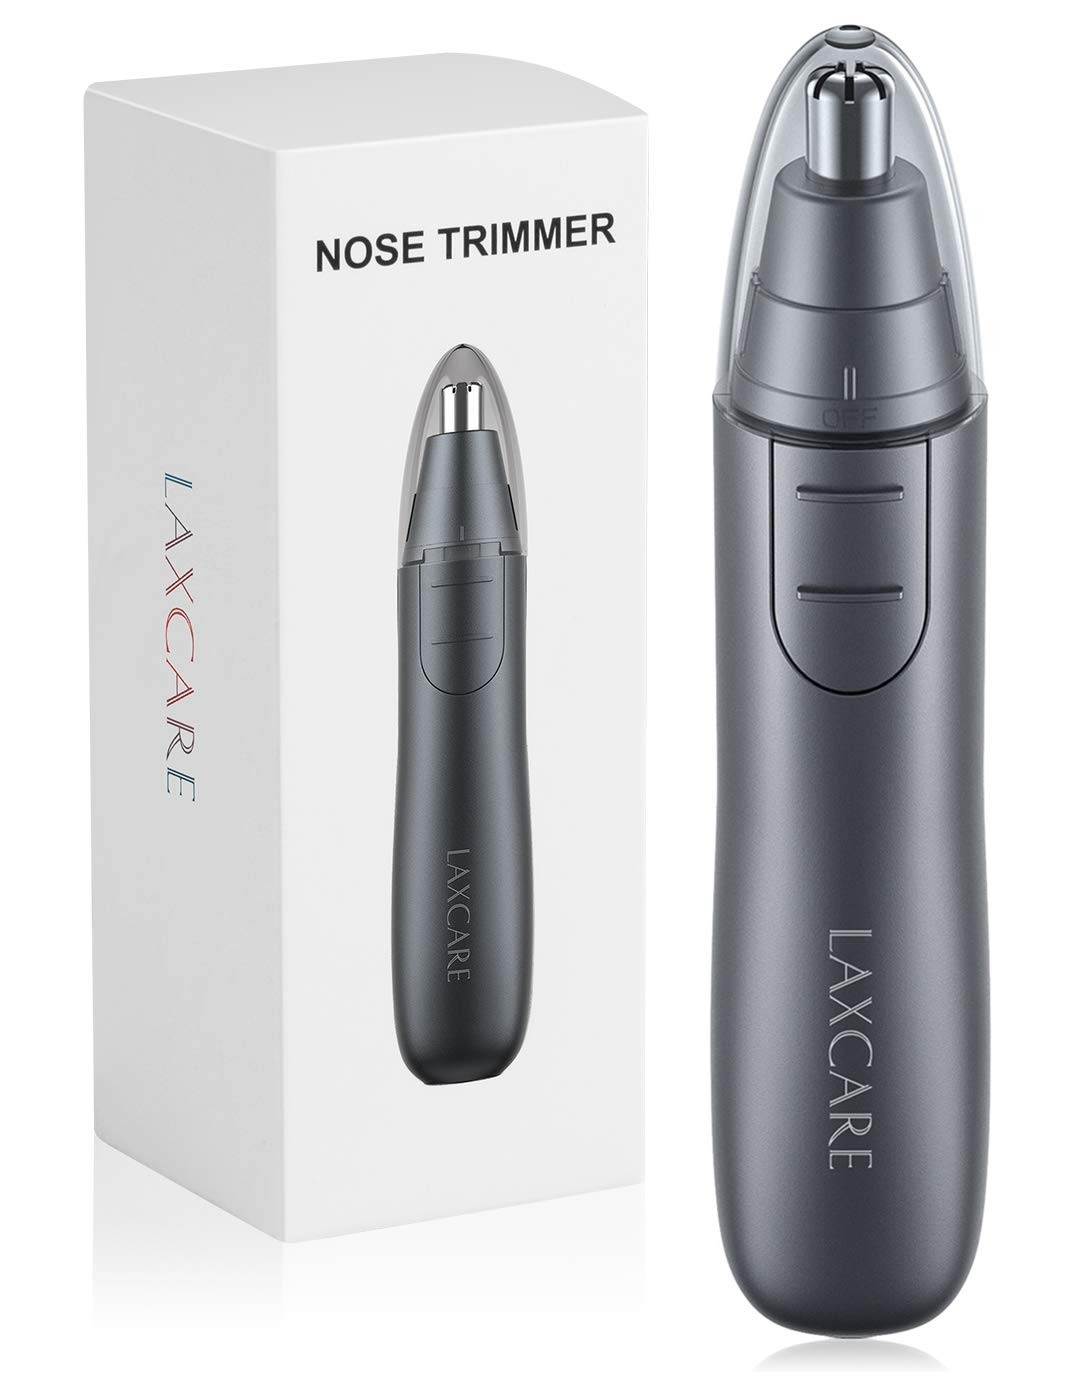 Nose Hair Trimmer, Laxcare Ears and Nose Trimmer Shaver Clipper Removal Dual Edge Blades for Men